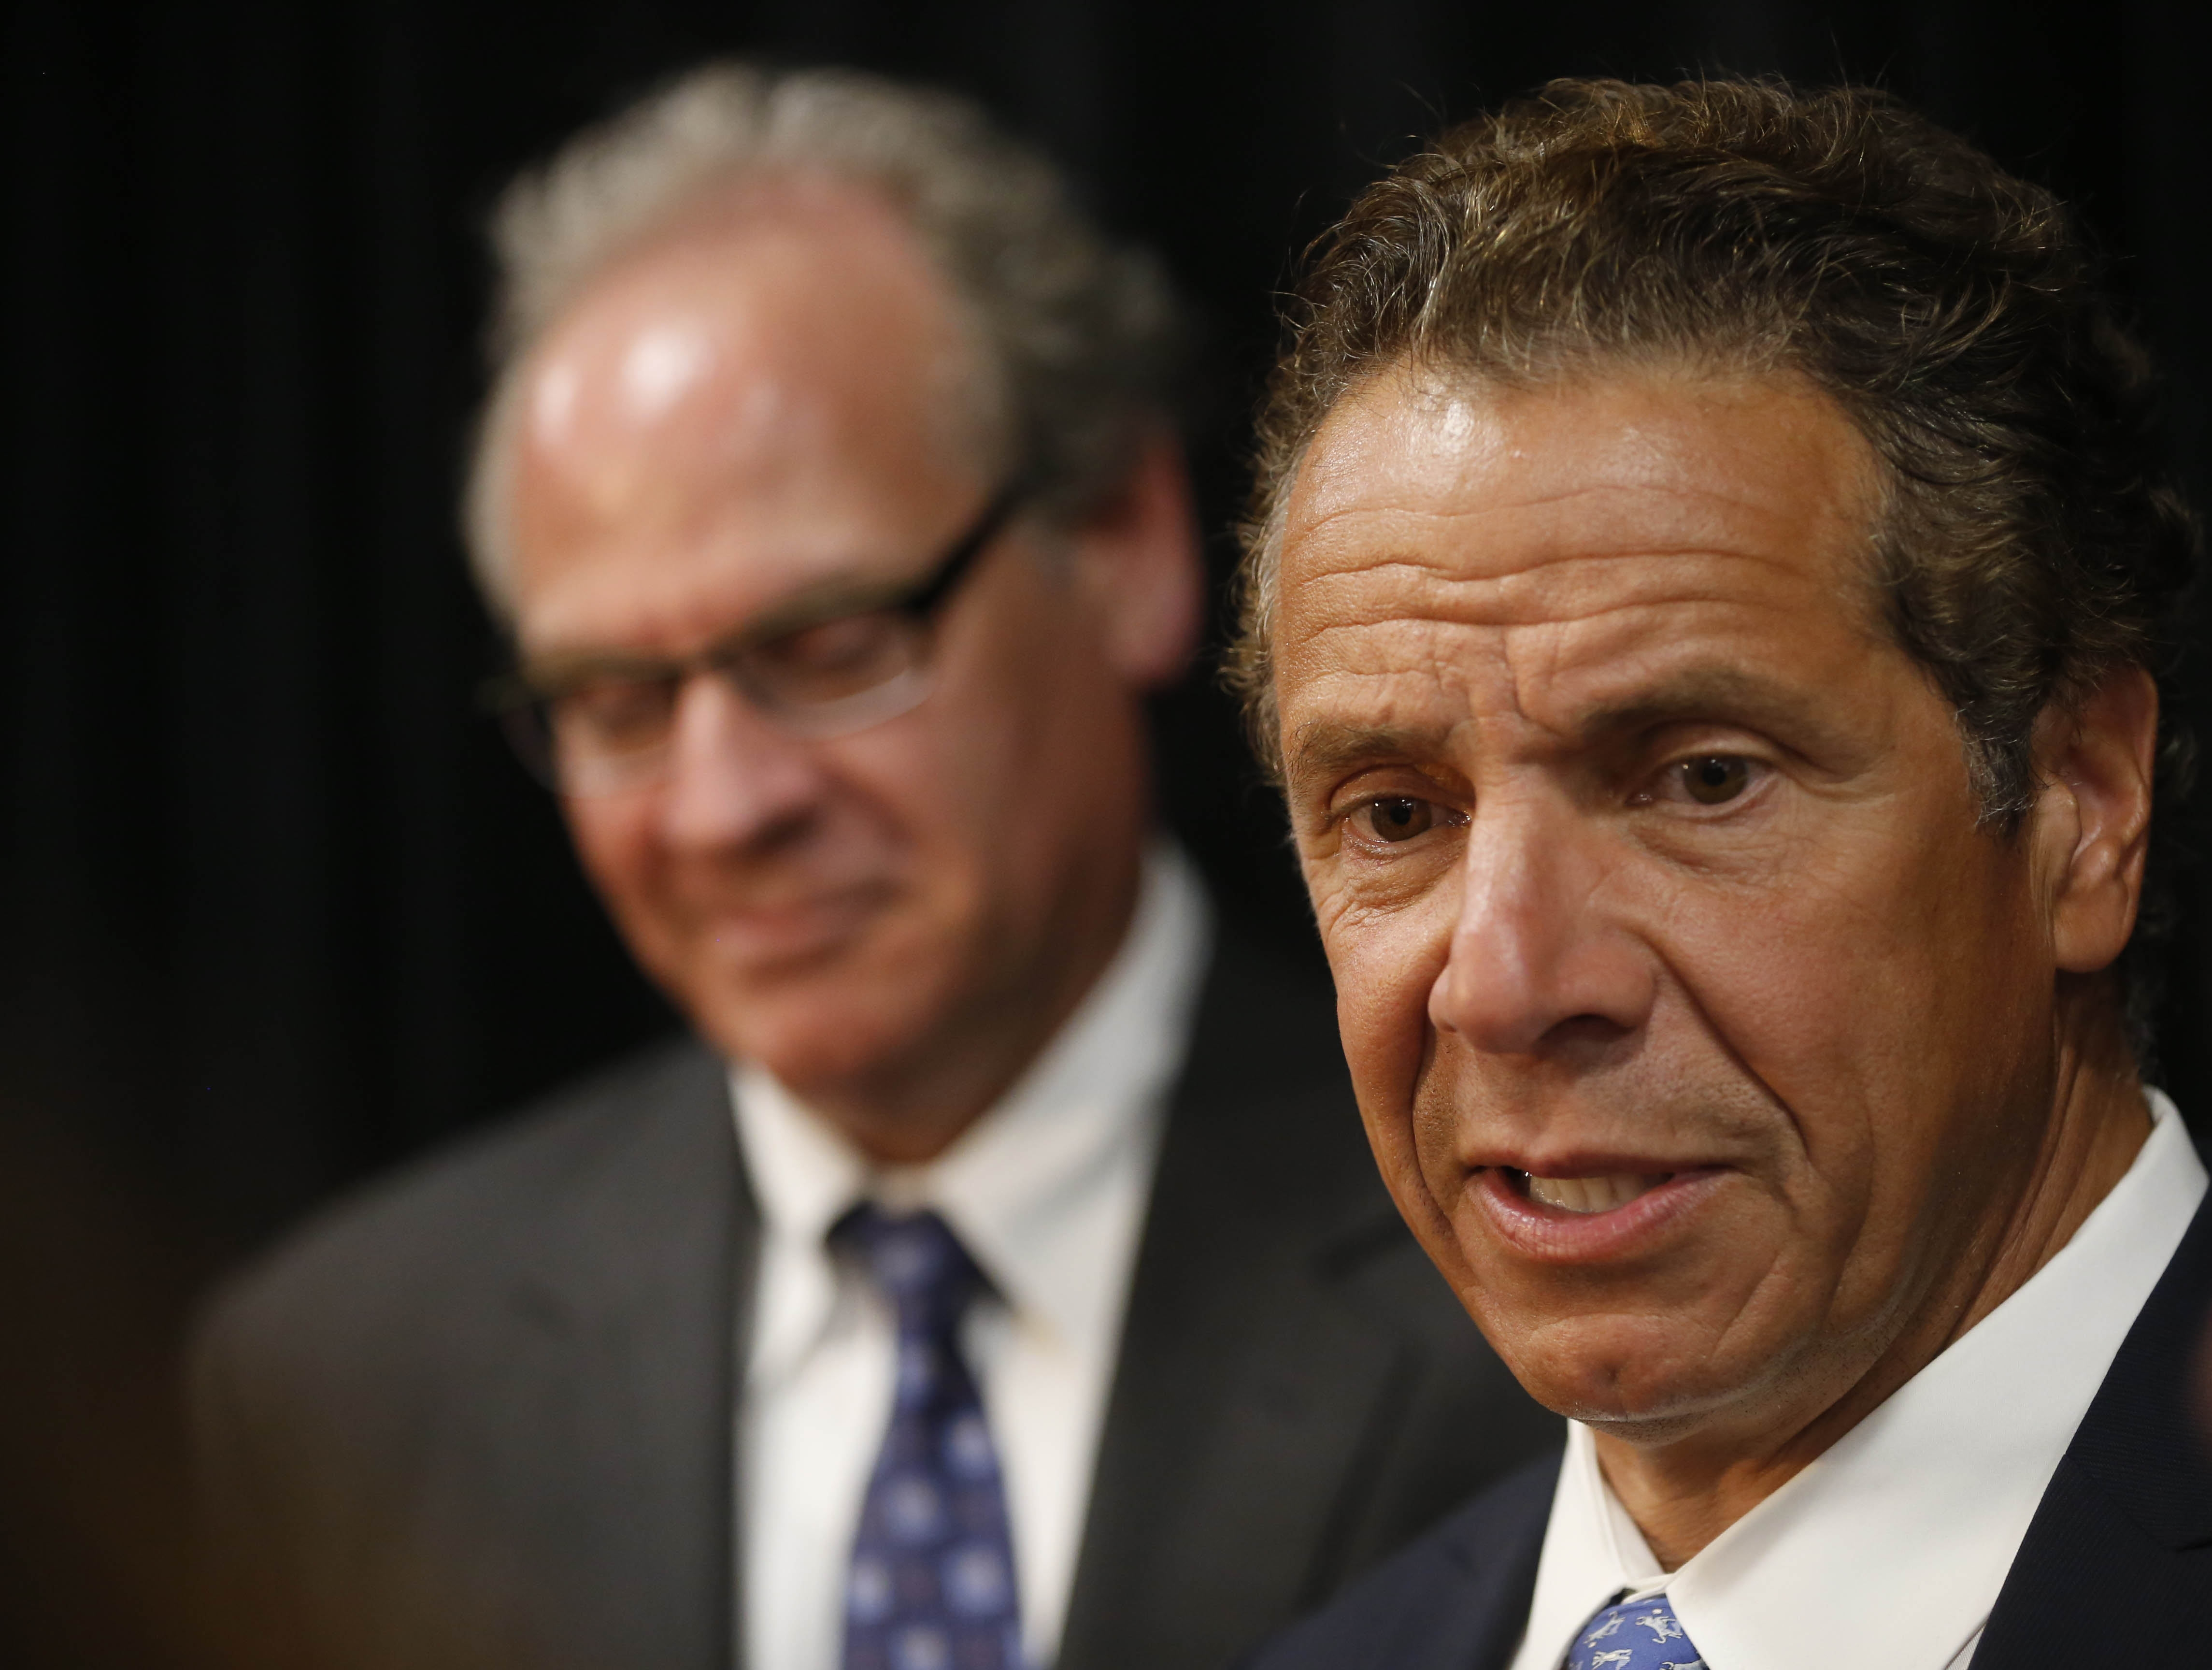 New York Gov. Andrew Cuomo speaks with the media following an event to announce that Geico will add 600 new jobs to its call center in Amherst. (Derek Gee/Buffalo News)